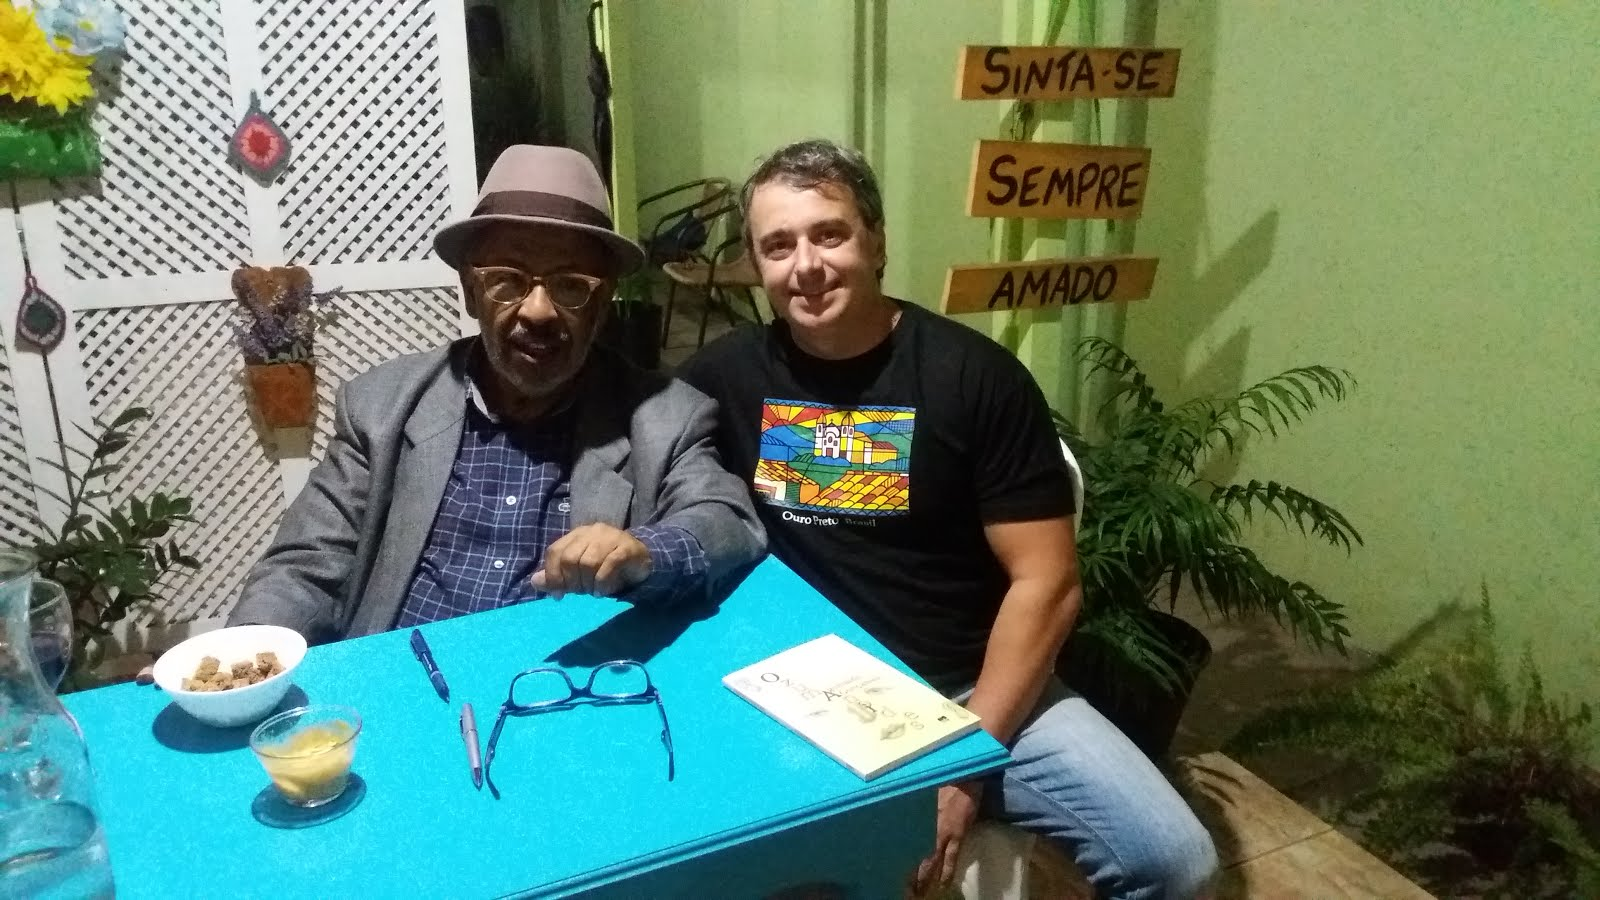 LANÇAMENTO DE LIVRO COM AGUINALDO JOSÉ GONÇALVES - VILHENA/MAIO 2017